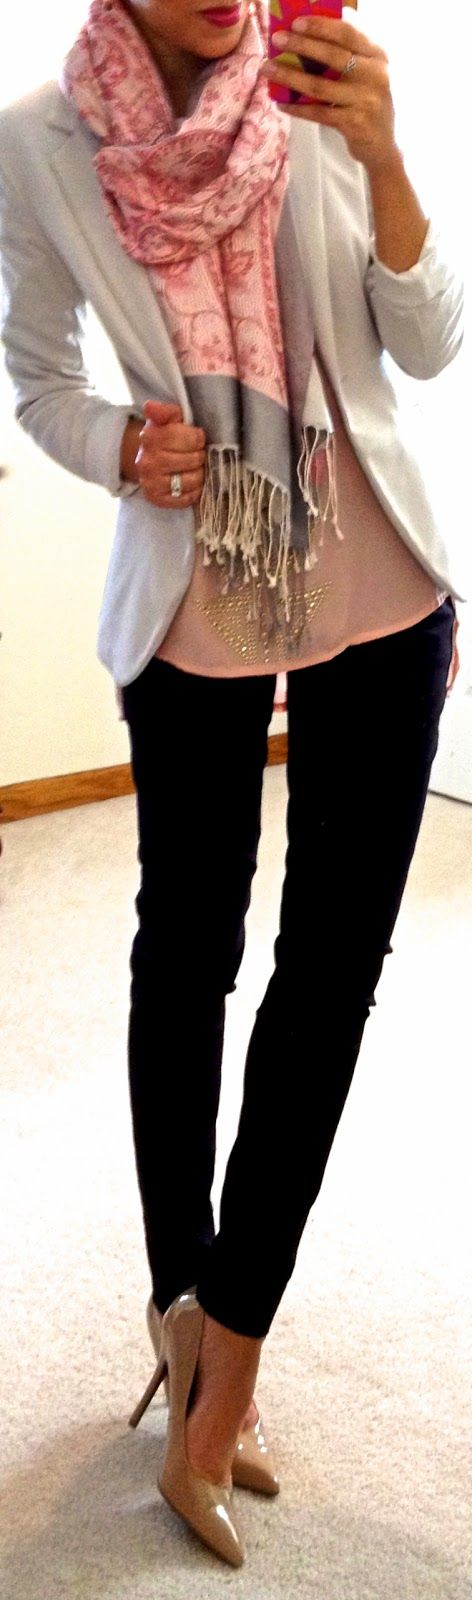 21 Splended Scarf Outfit Ideas For Fall